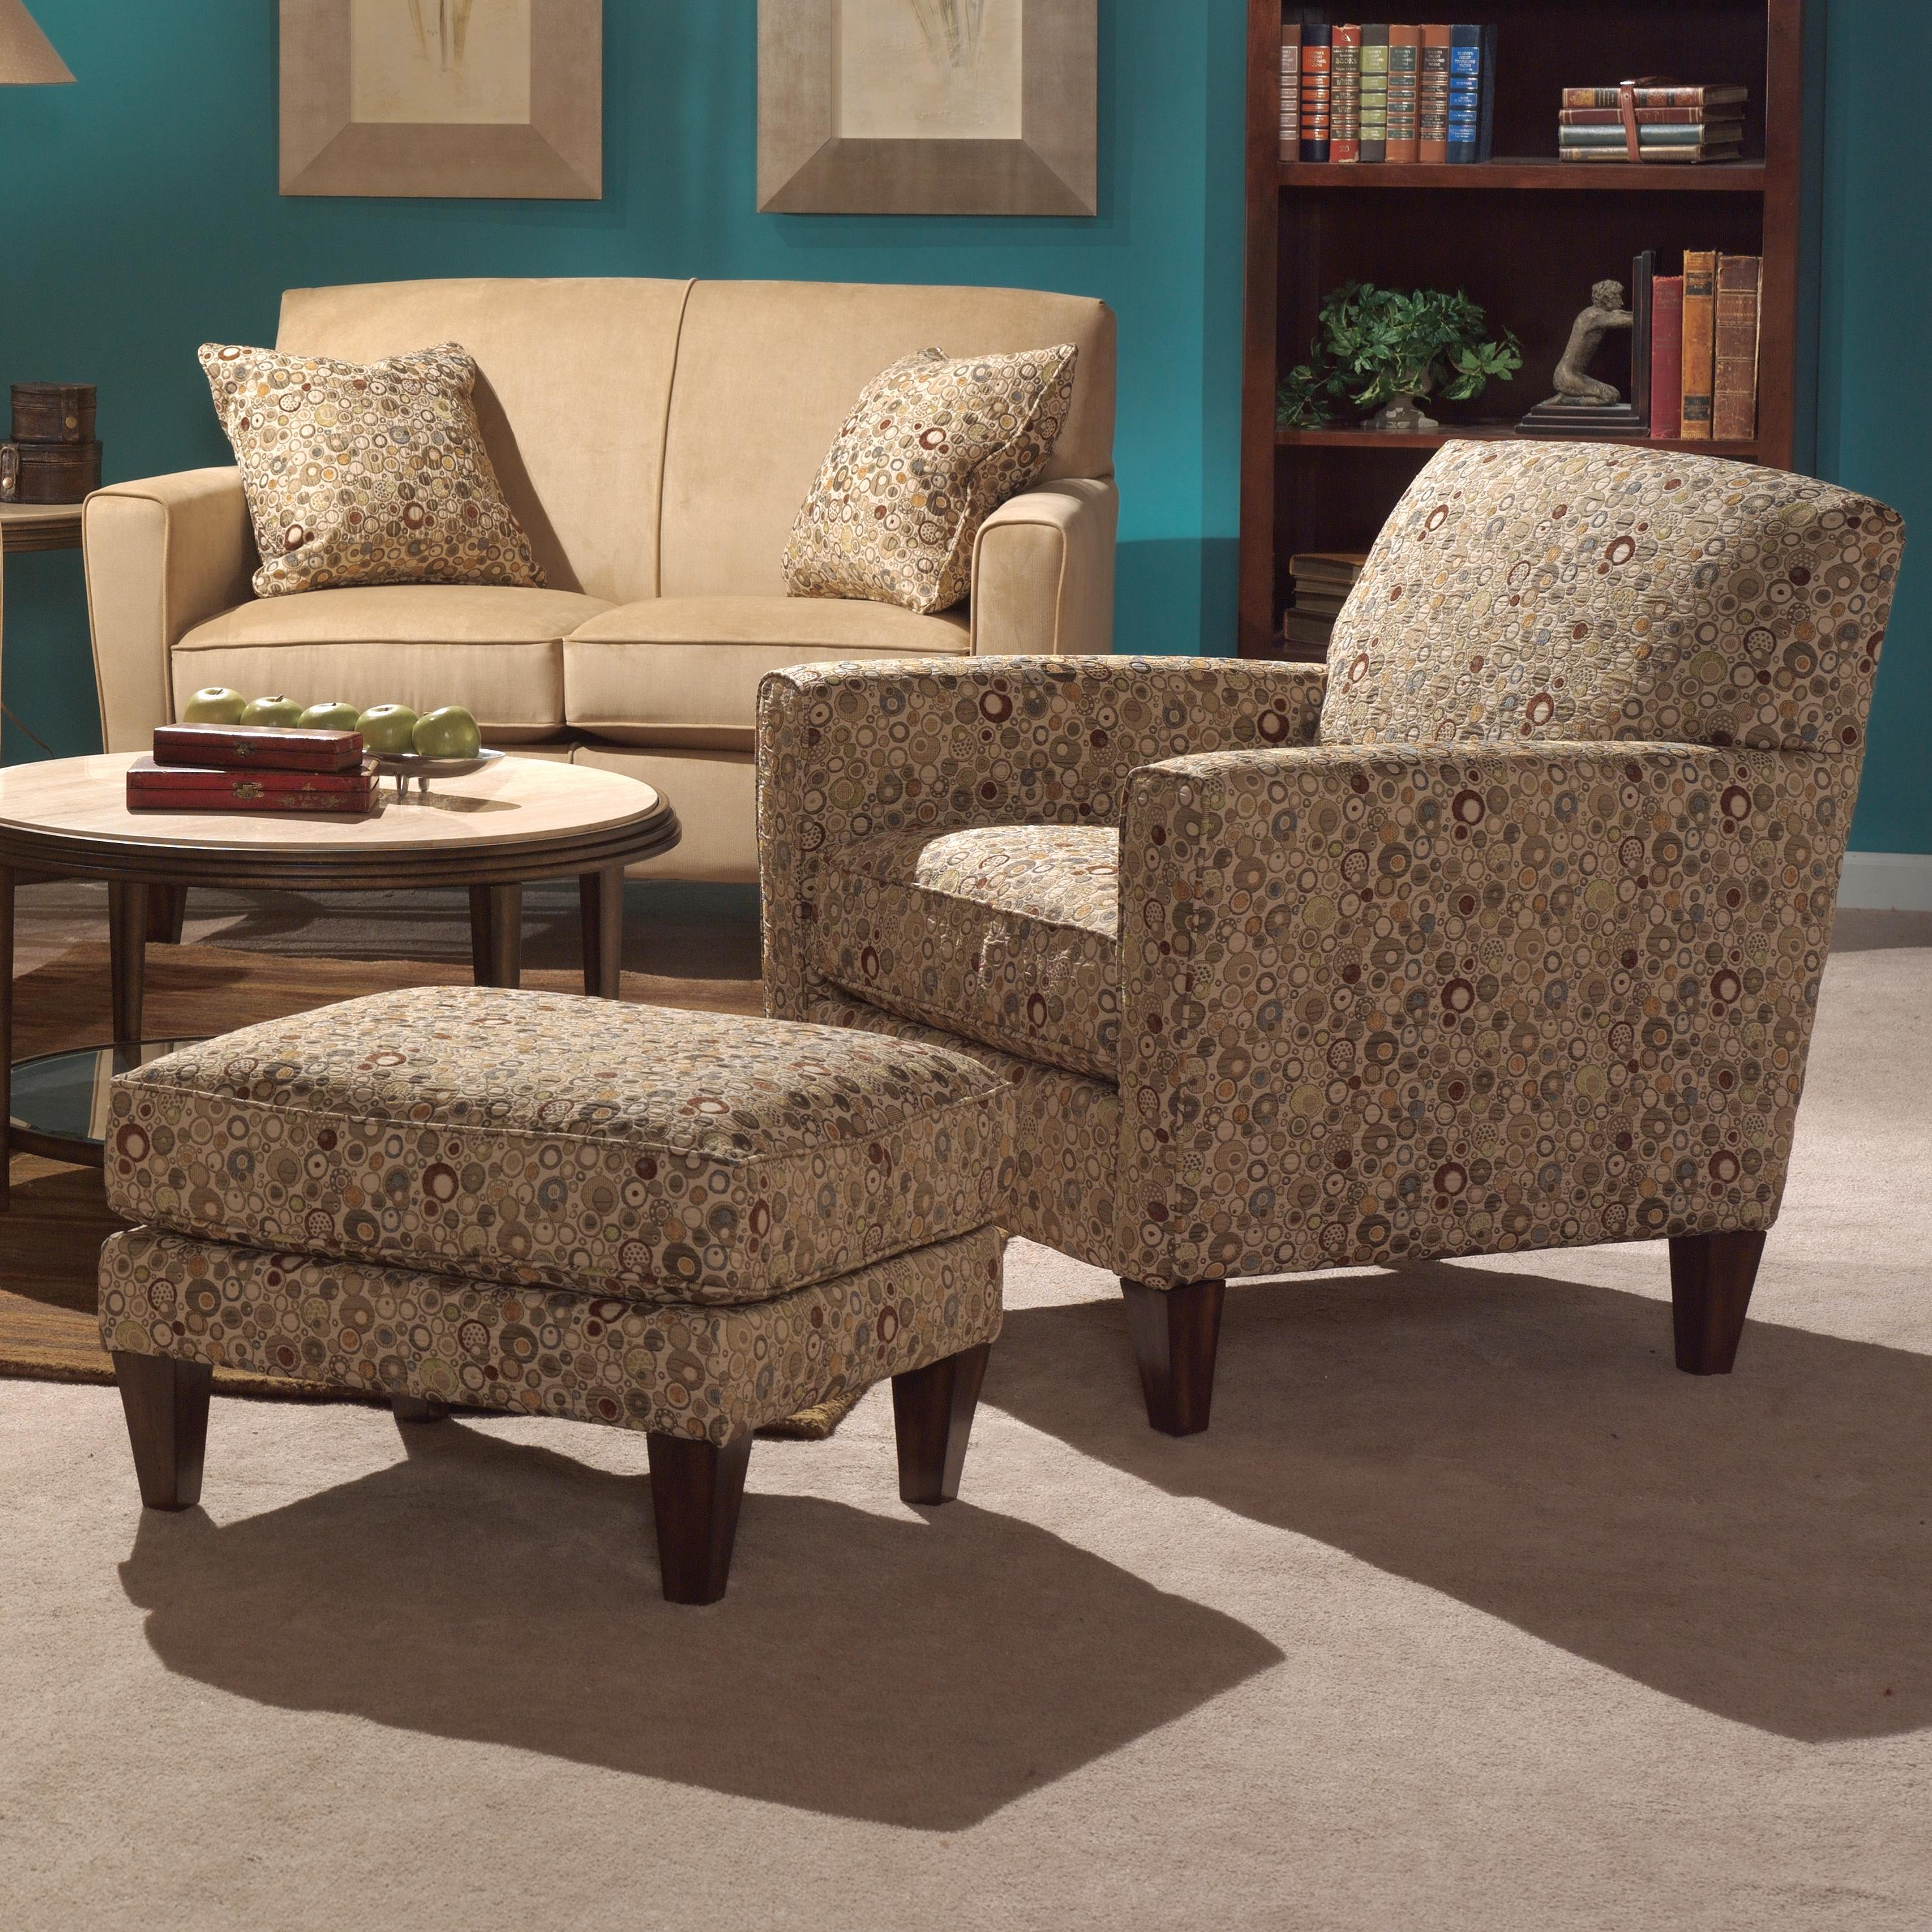 Flexsteel digby chair and ottoman set wayside furniture for Wayside furniture